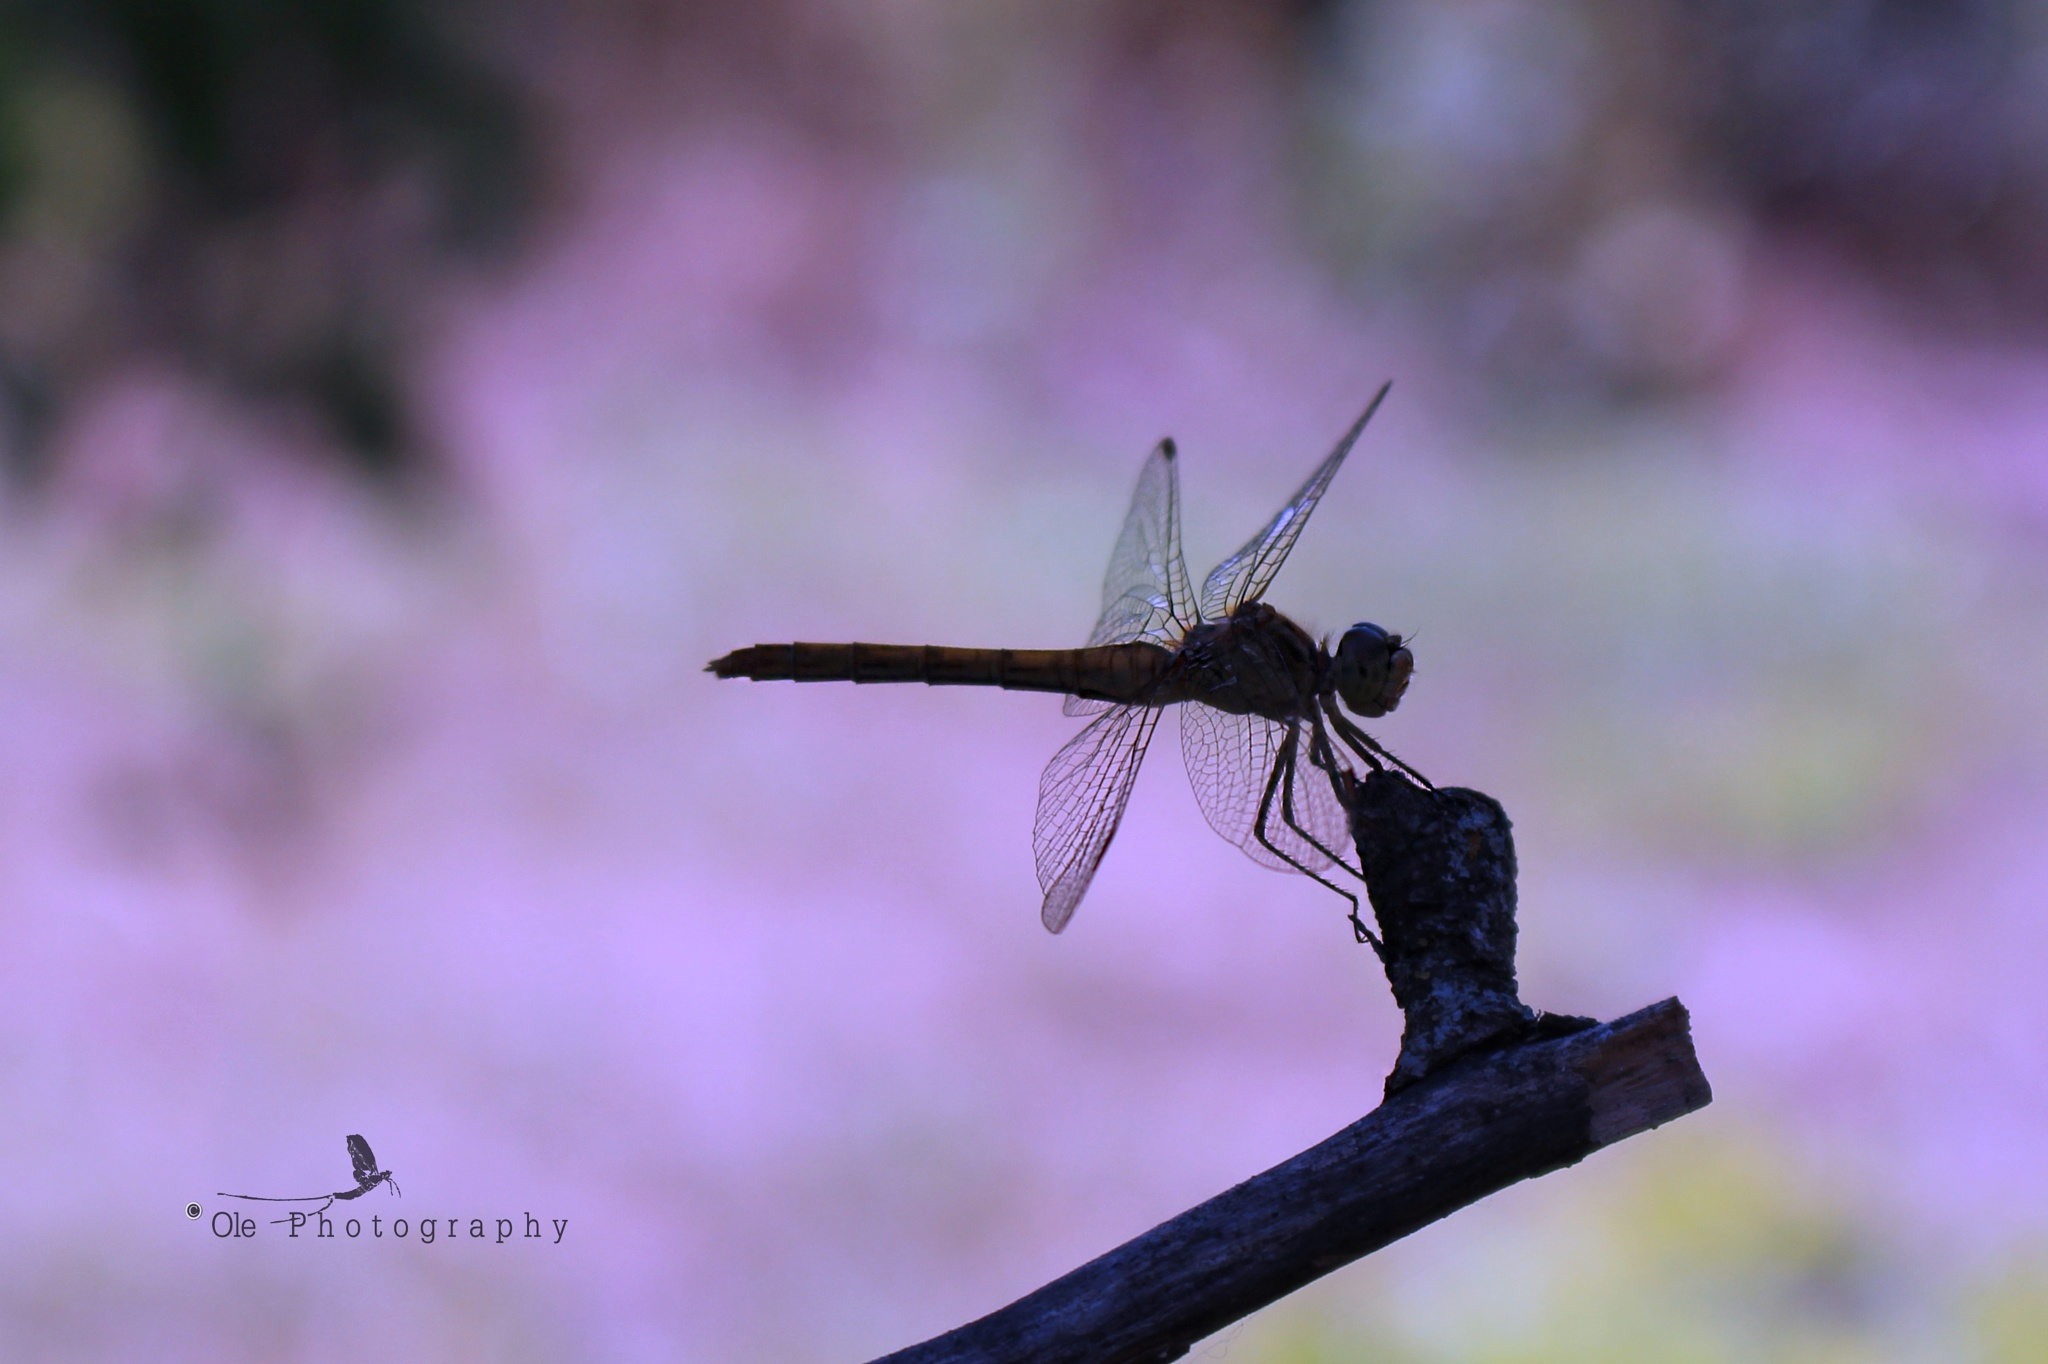 Dragonfly silhouette by OlePhotography